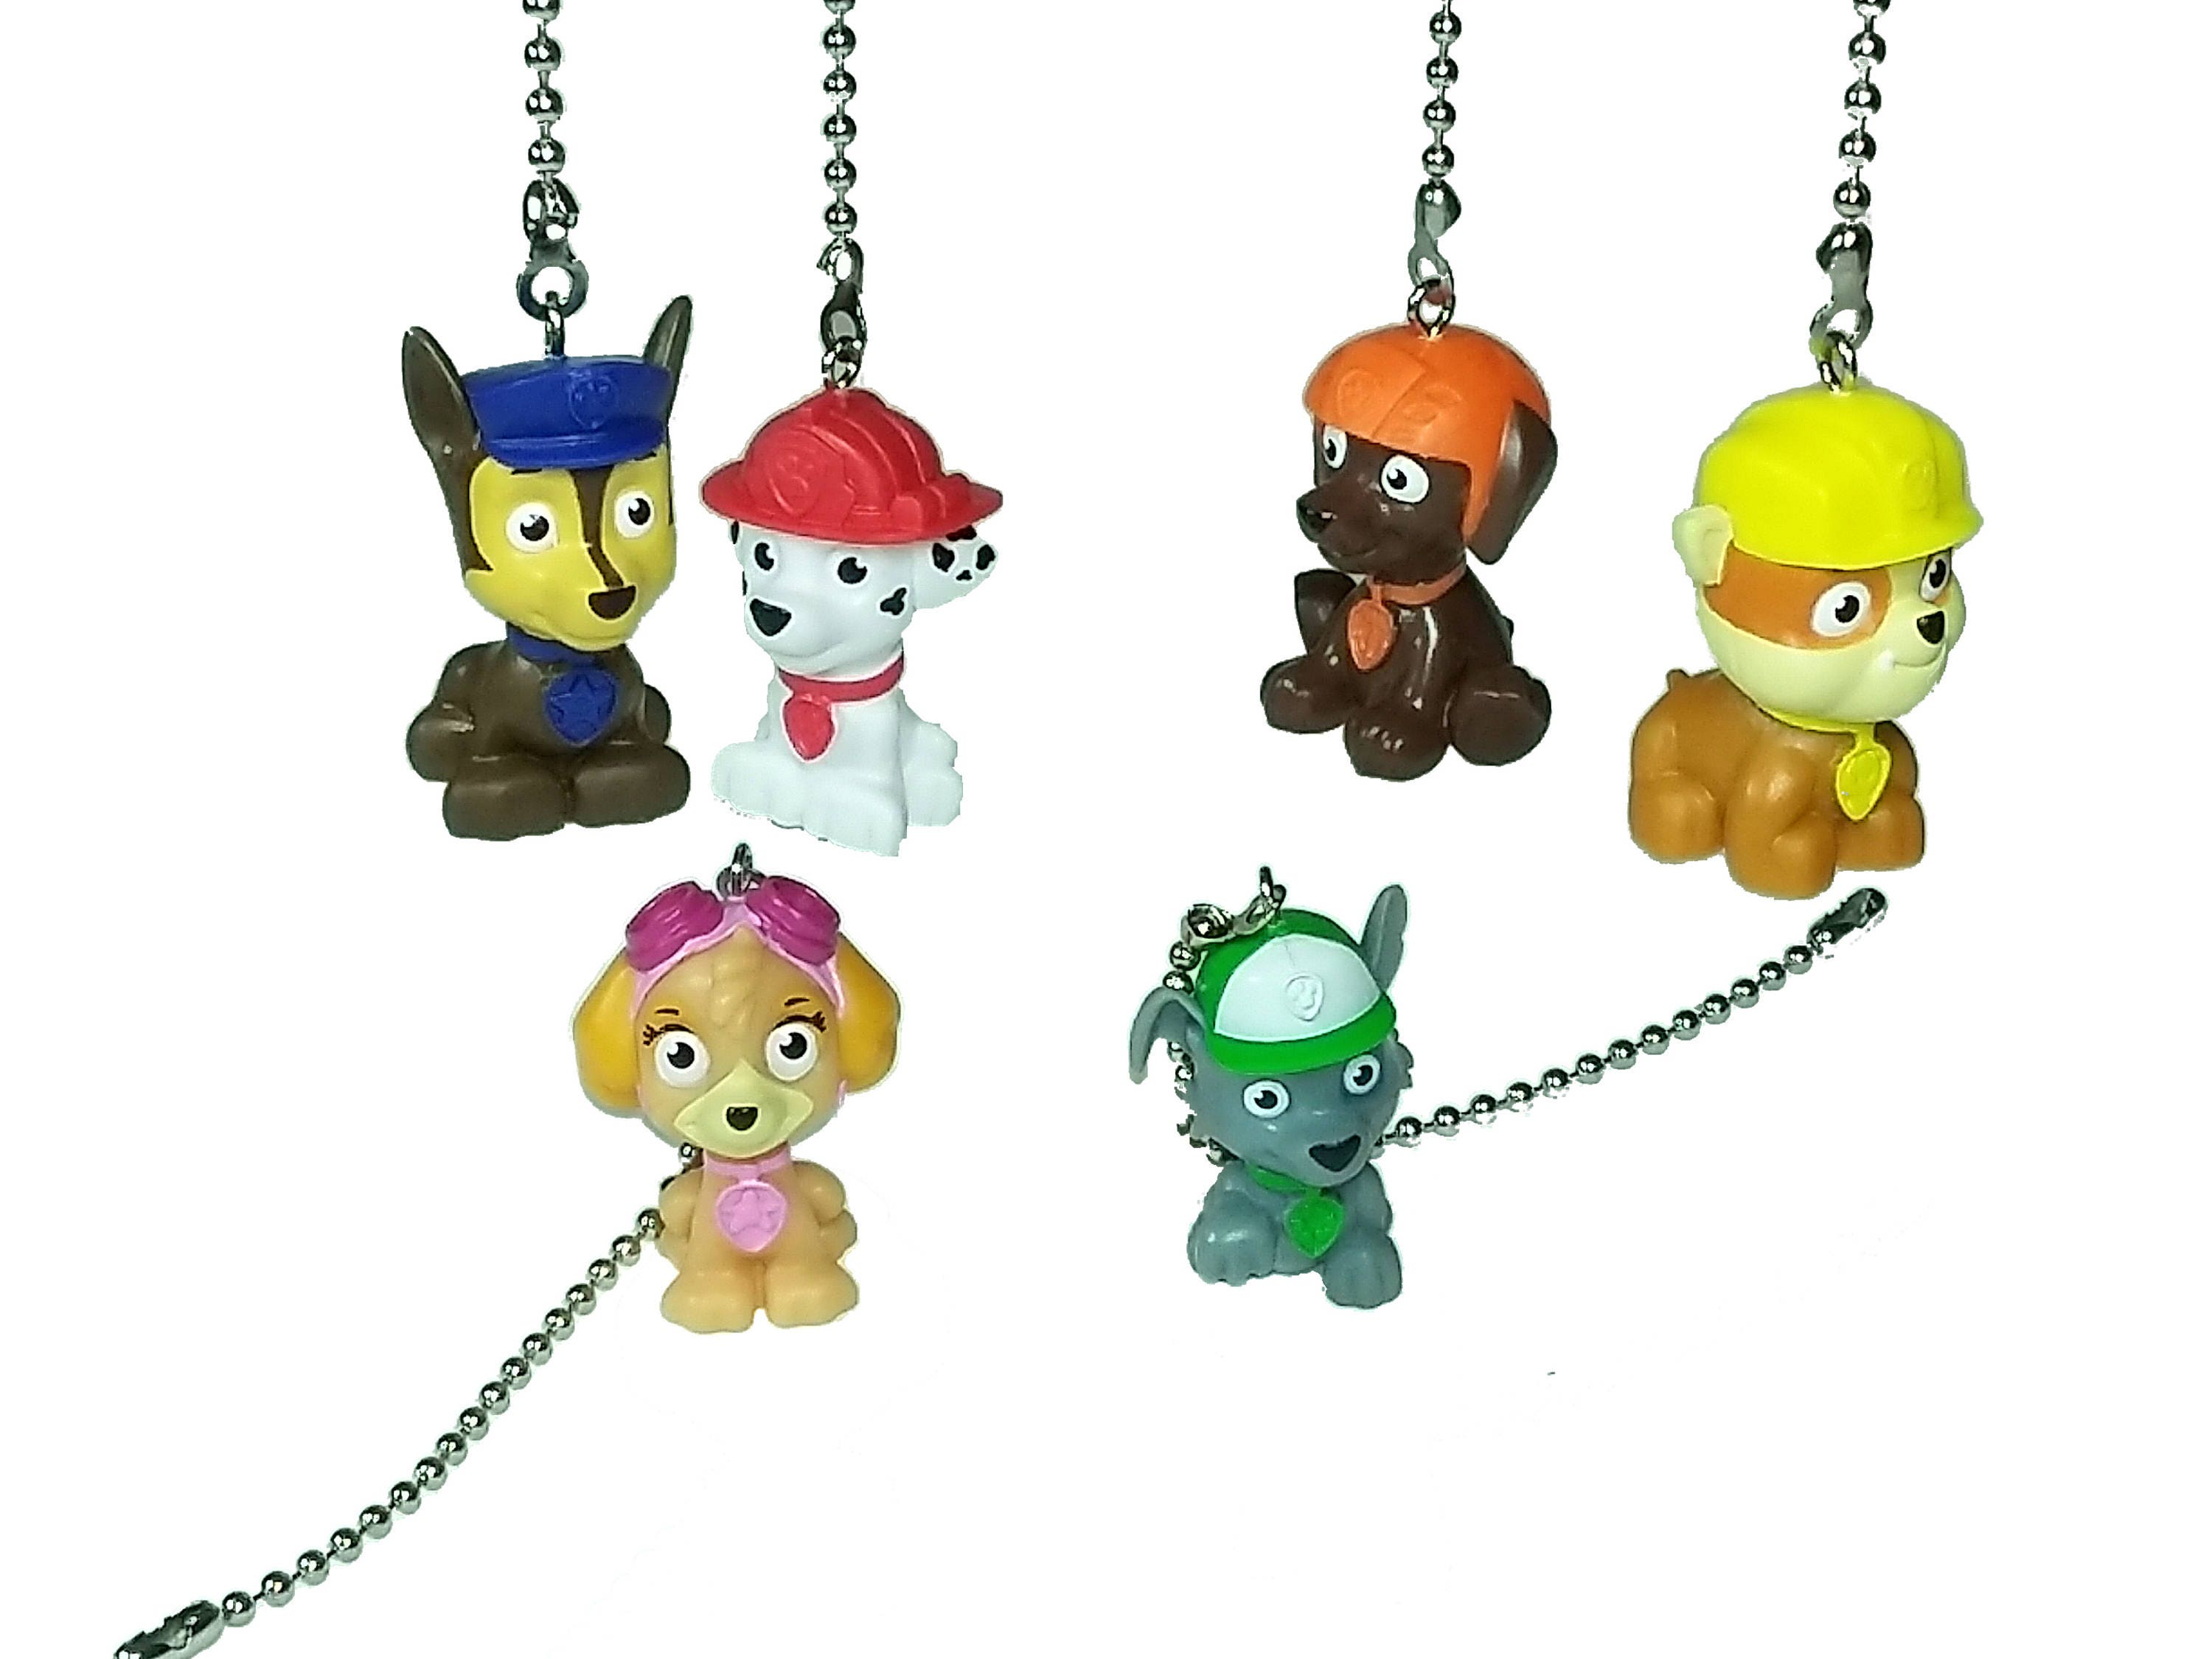 Paw Patrol Ceiling Fan Light Pull Chain Kids Room Decor Nursery